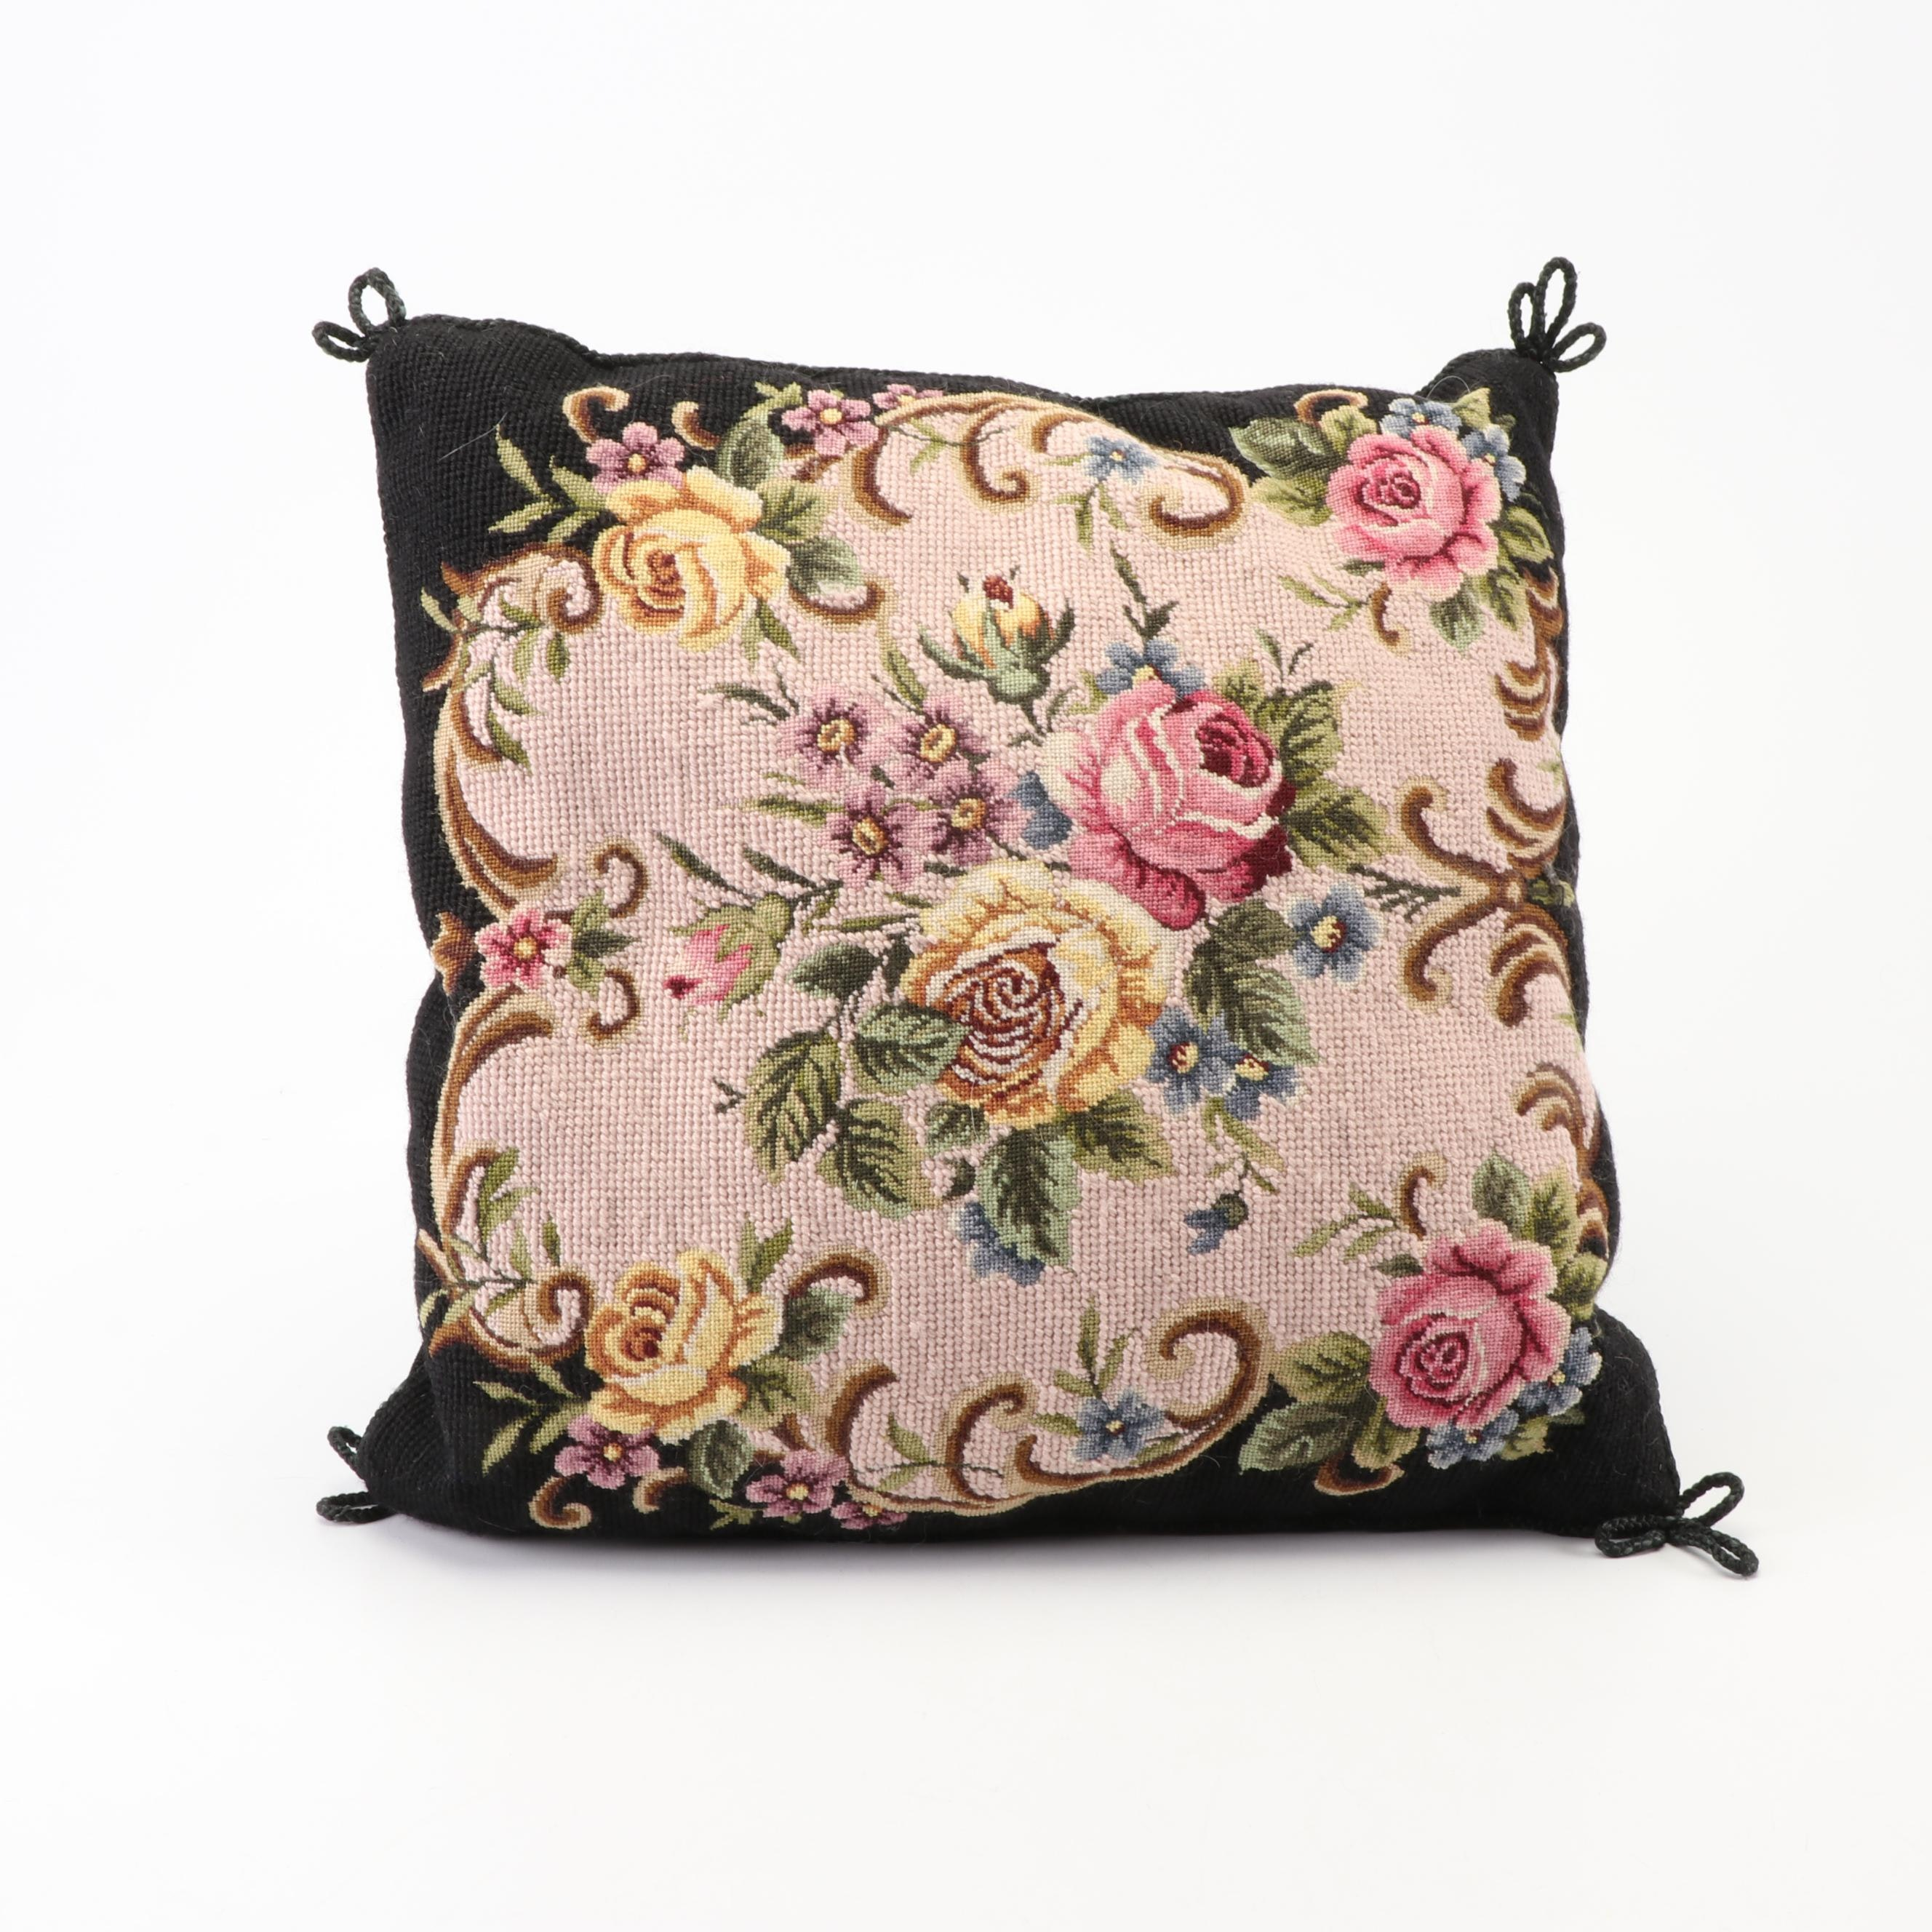 Katha Diddel Stitched Floral Throw Pillow